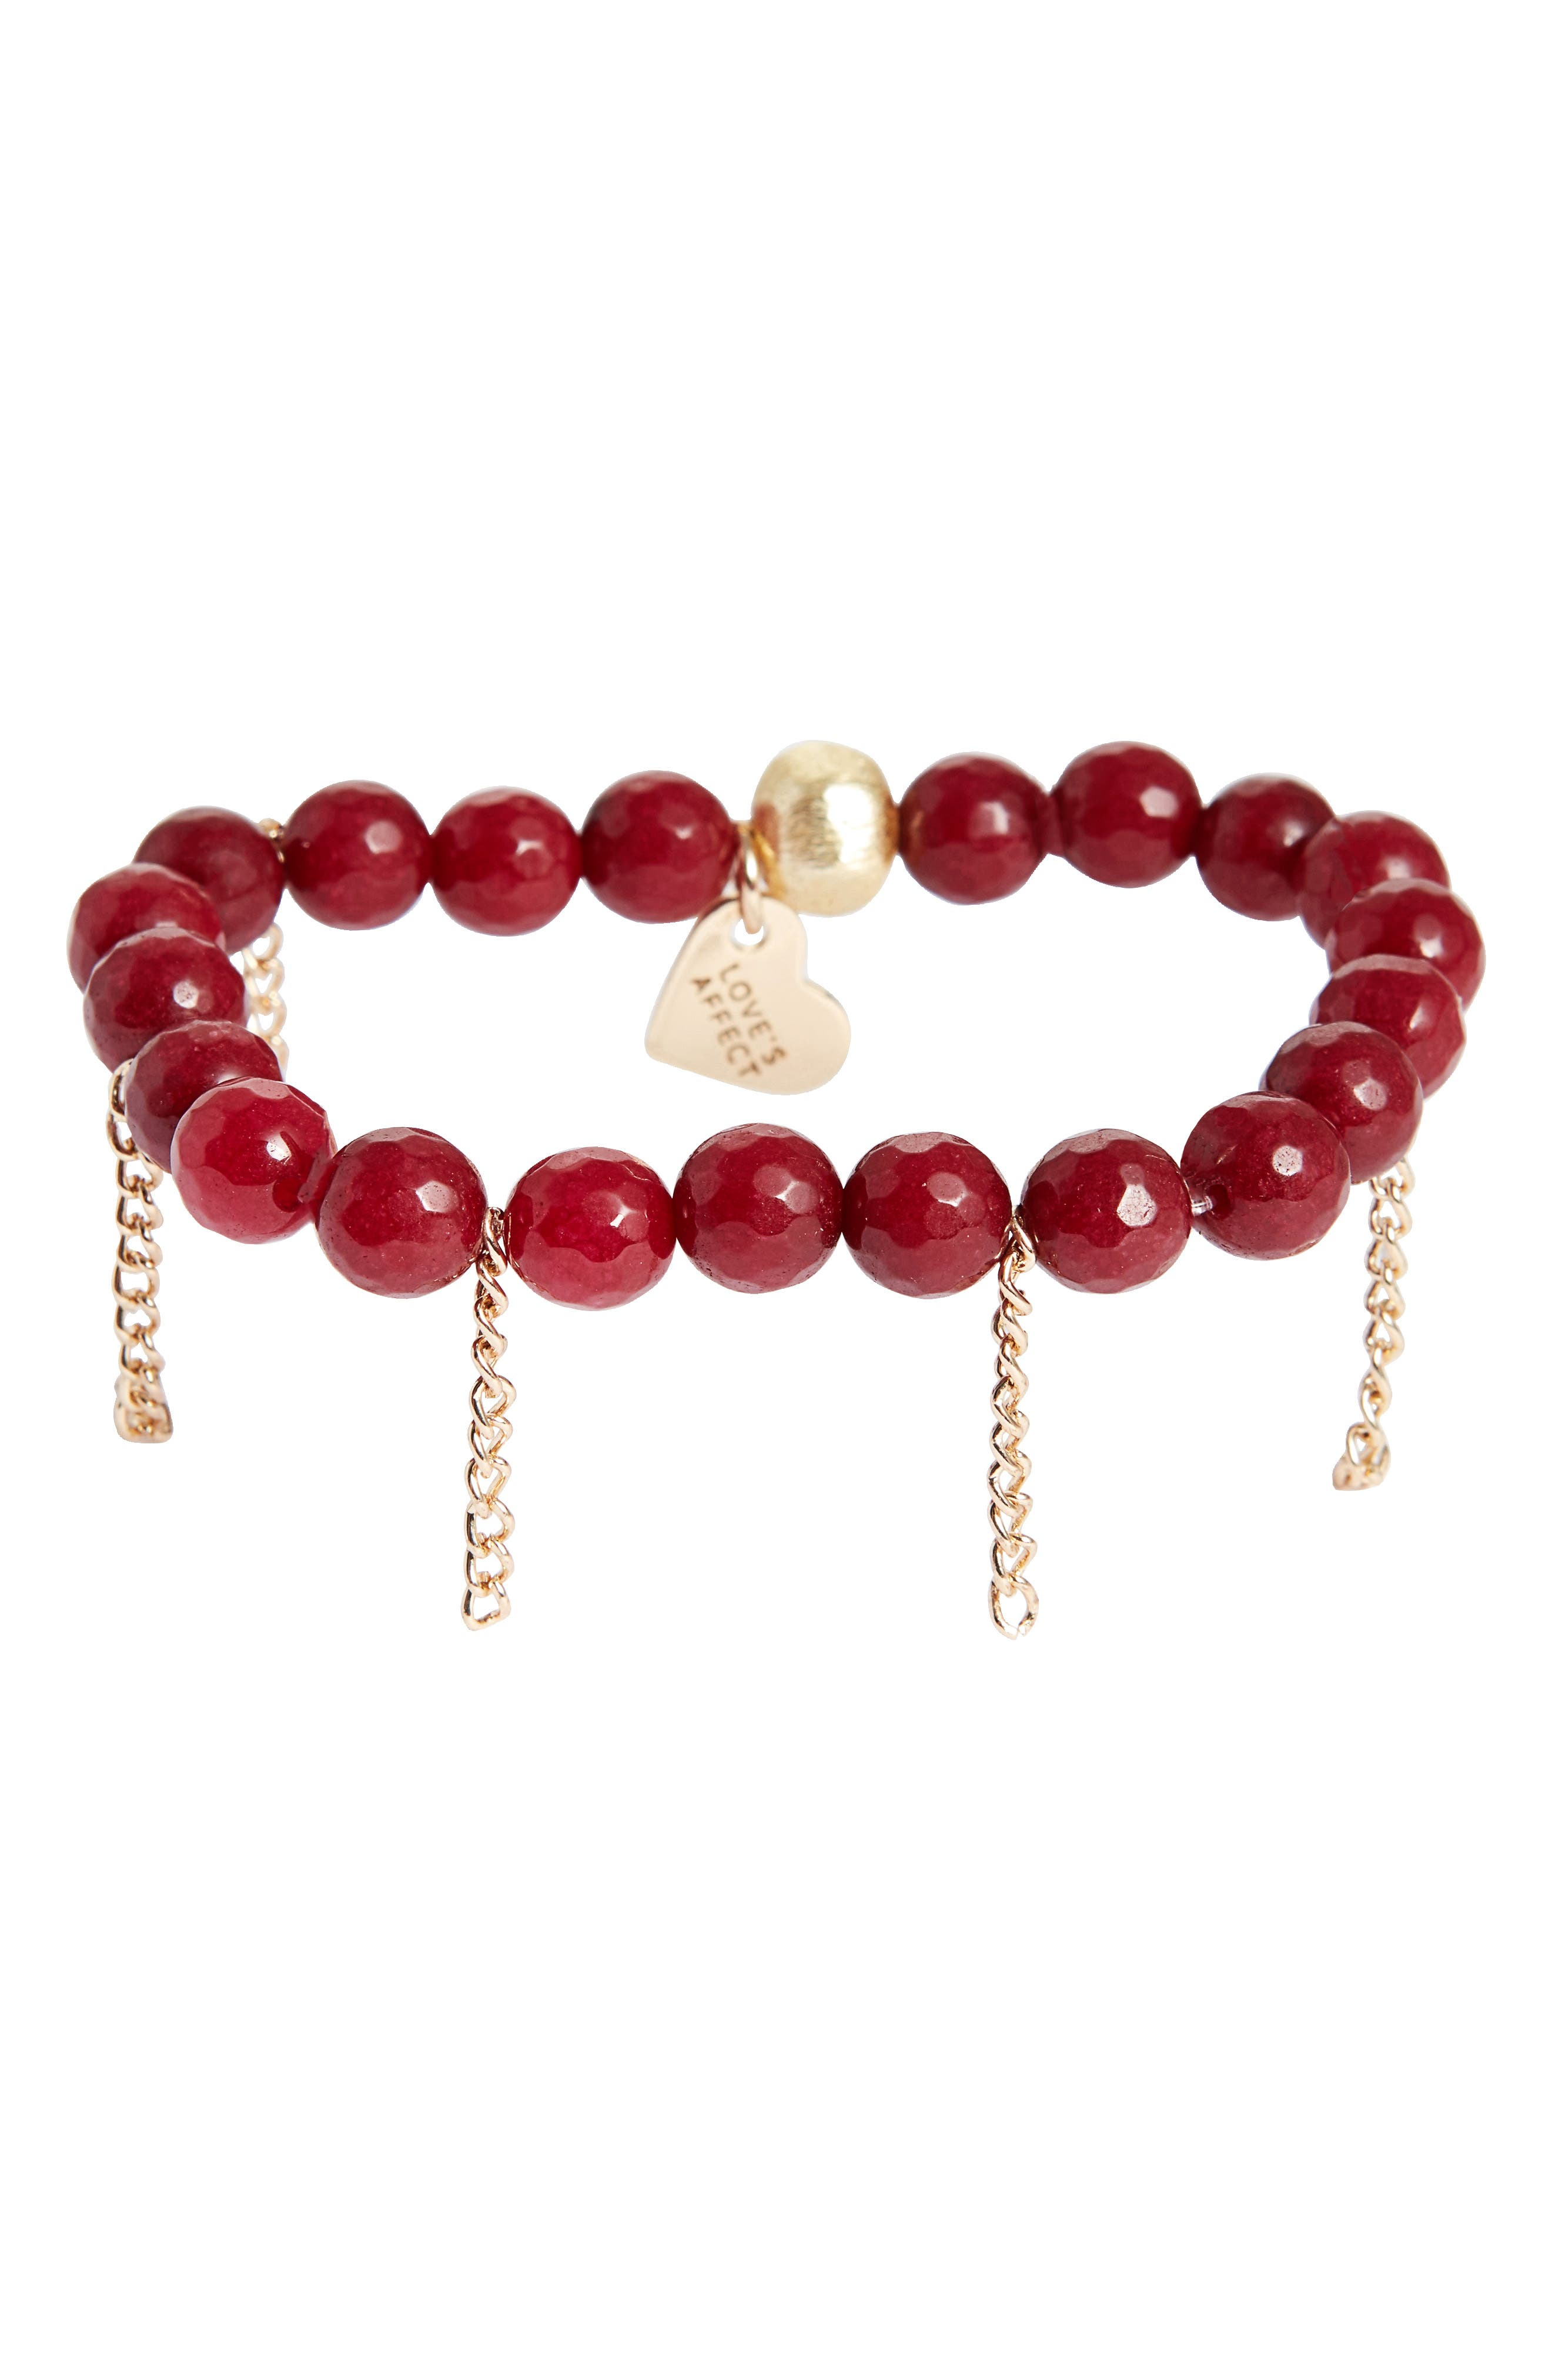 Main Image - Love's Affect Devyn Semiprecious Stretch Bracelet